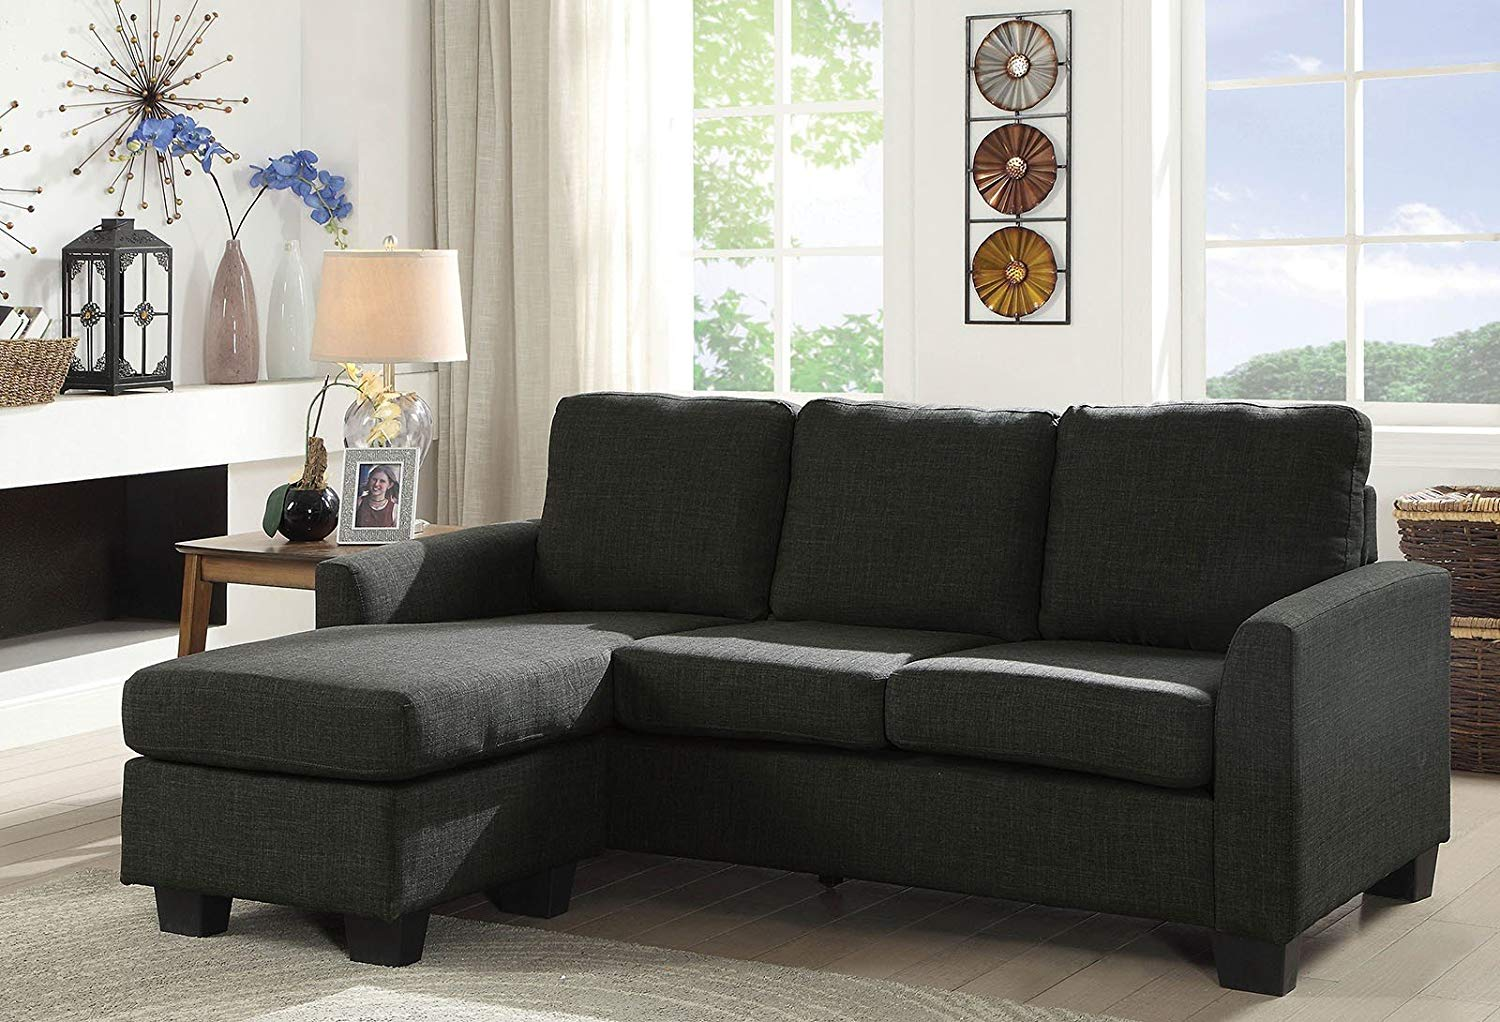 Cheap Sectional Sleeper Sofa Chaise Find Sectional Sleeper